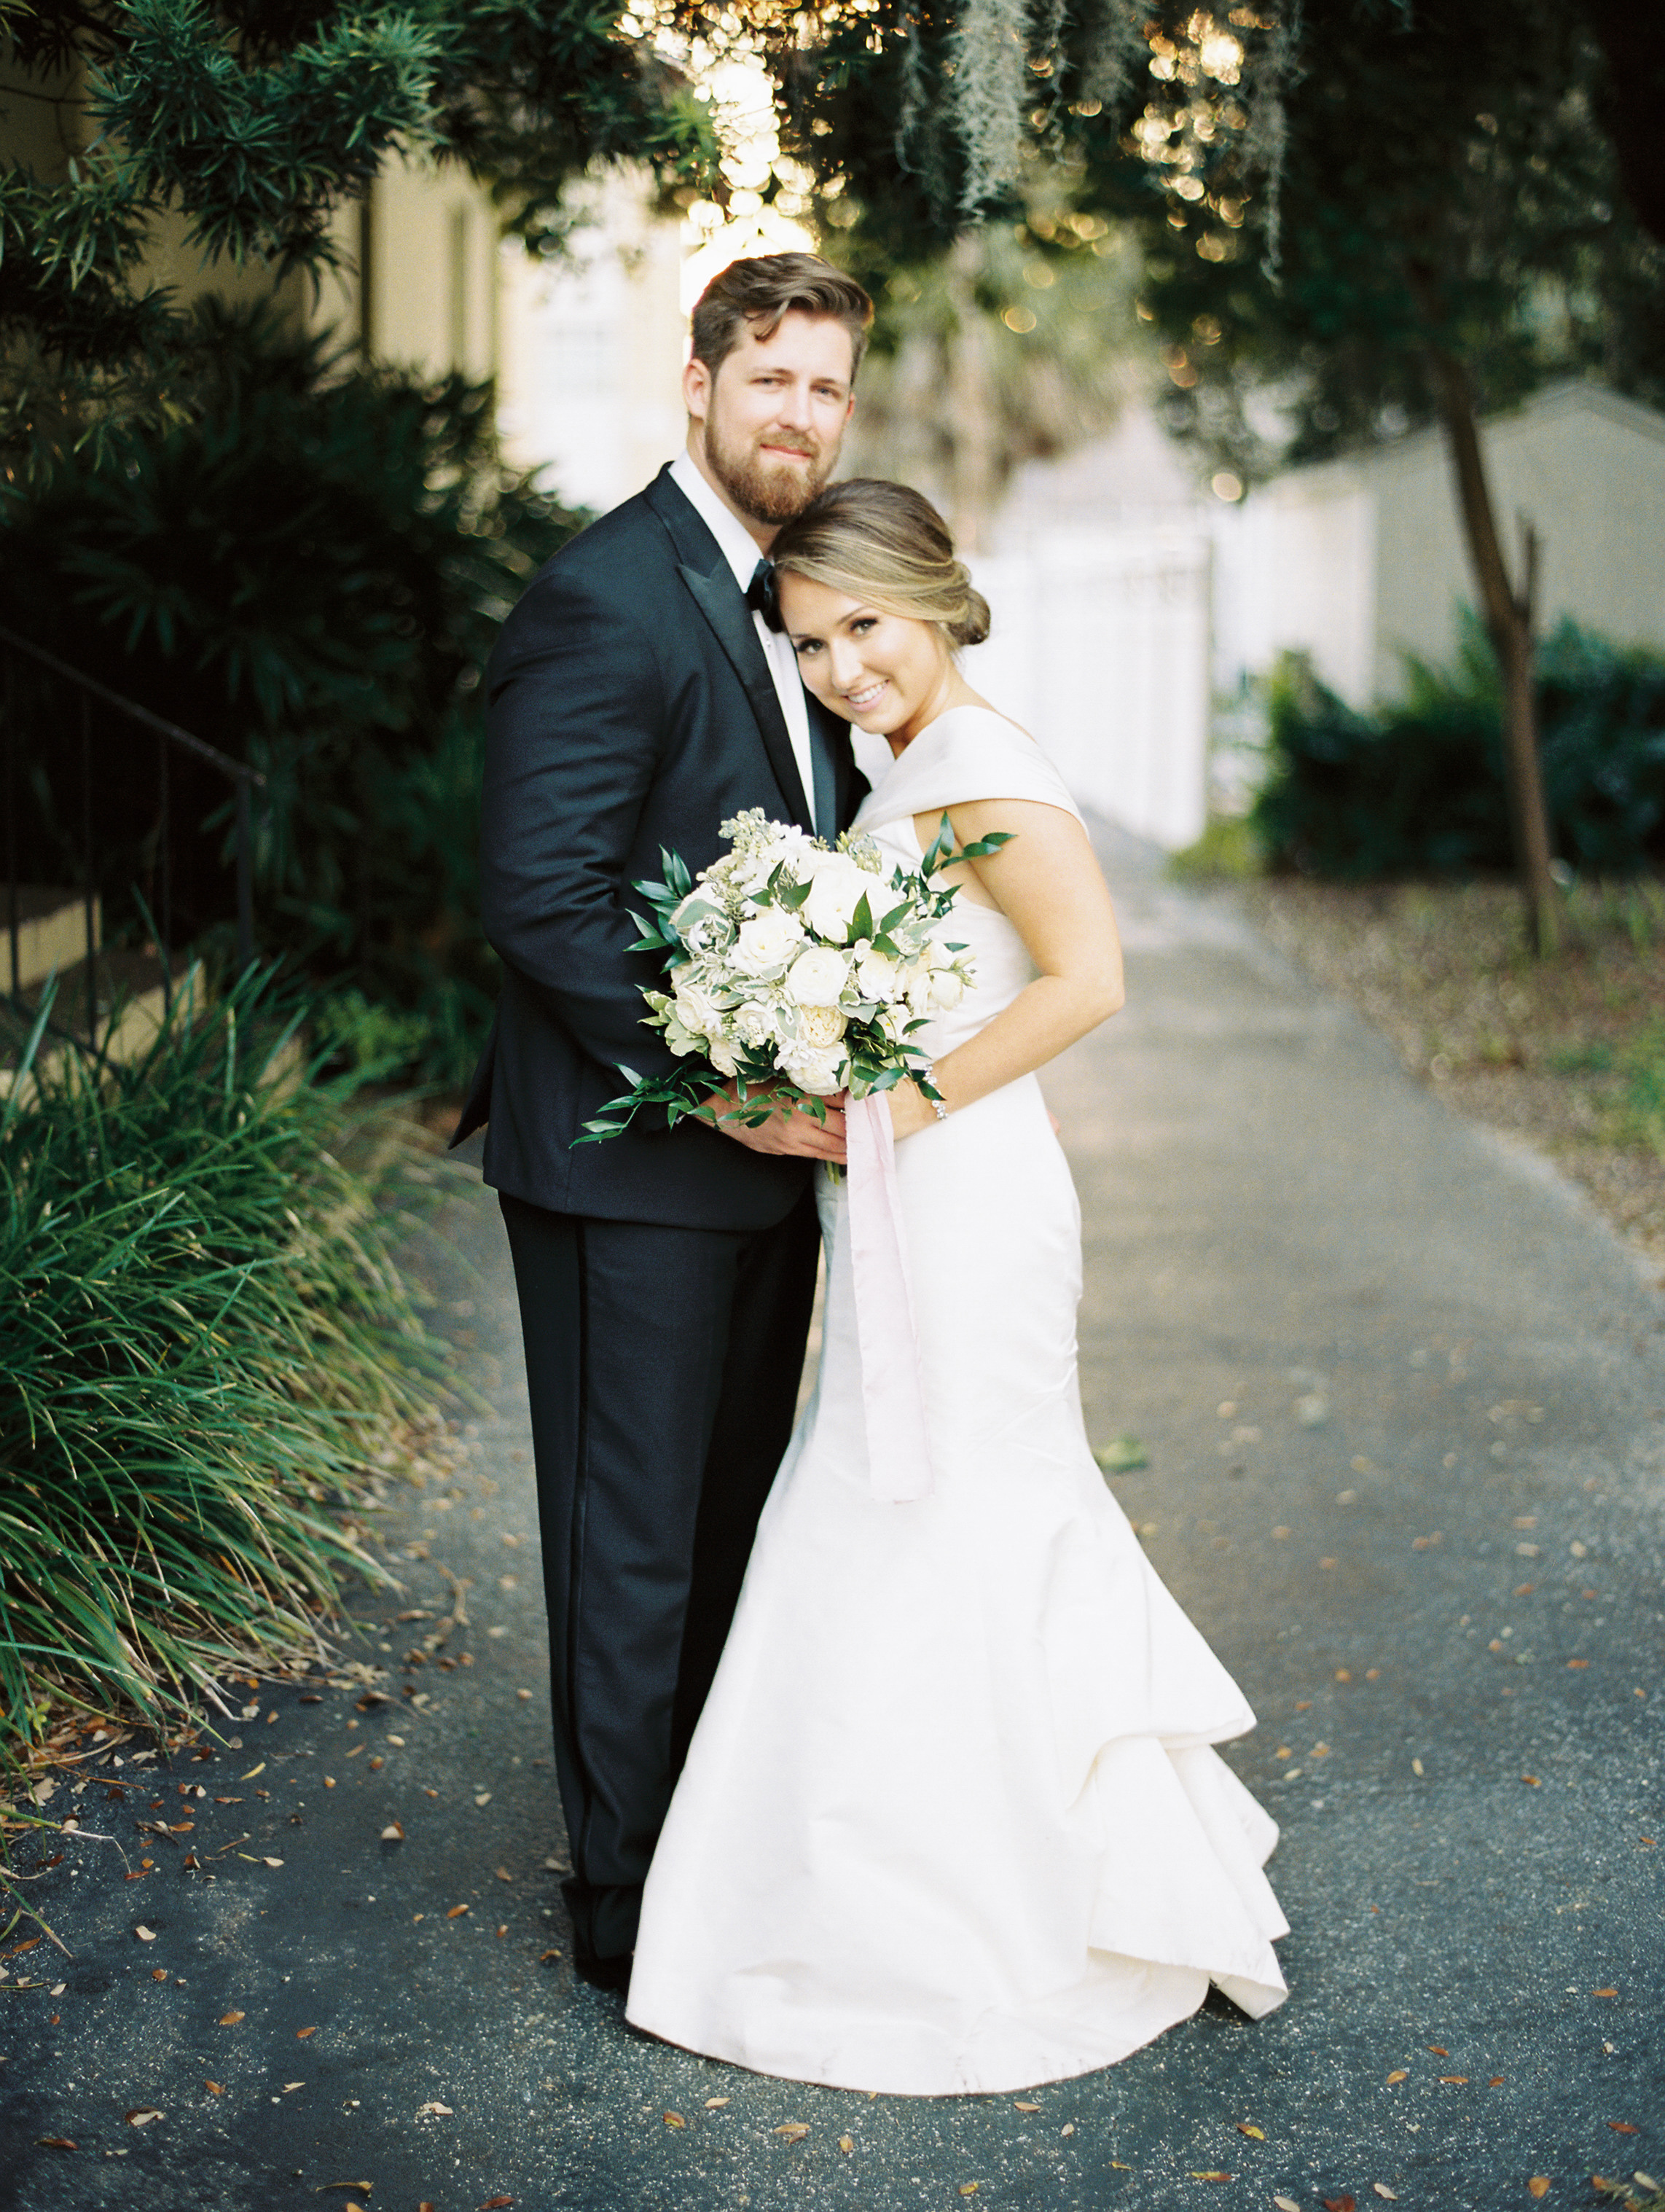 classic bride and groom with flowers general bouquet